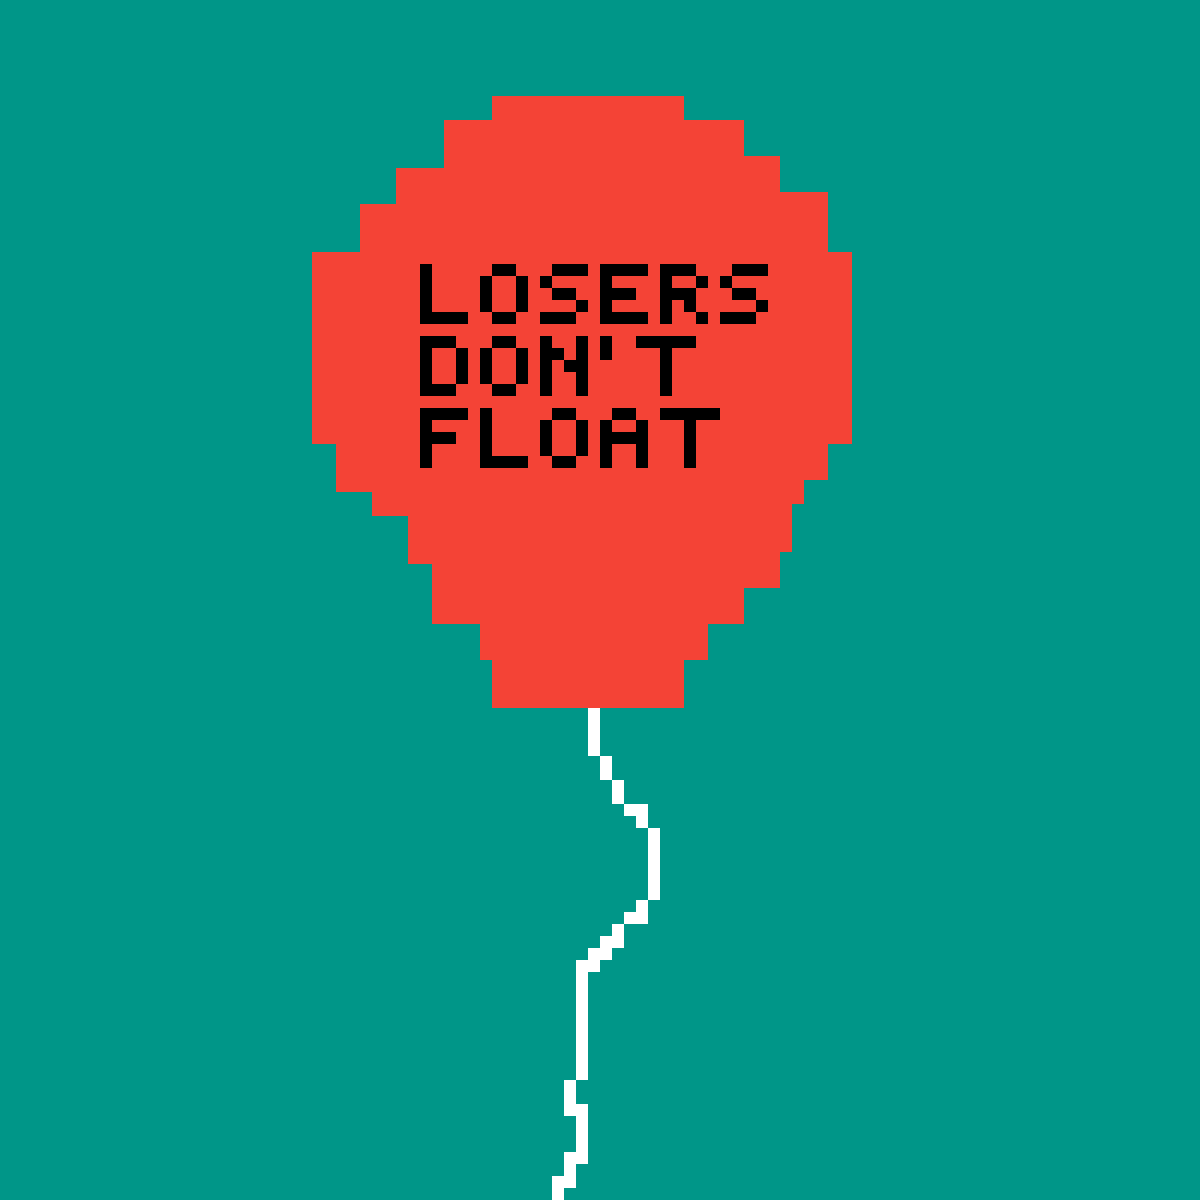 Losers don't float by andrewrindler24